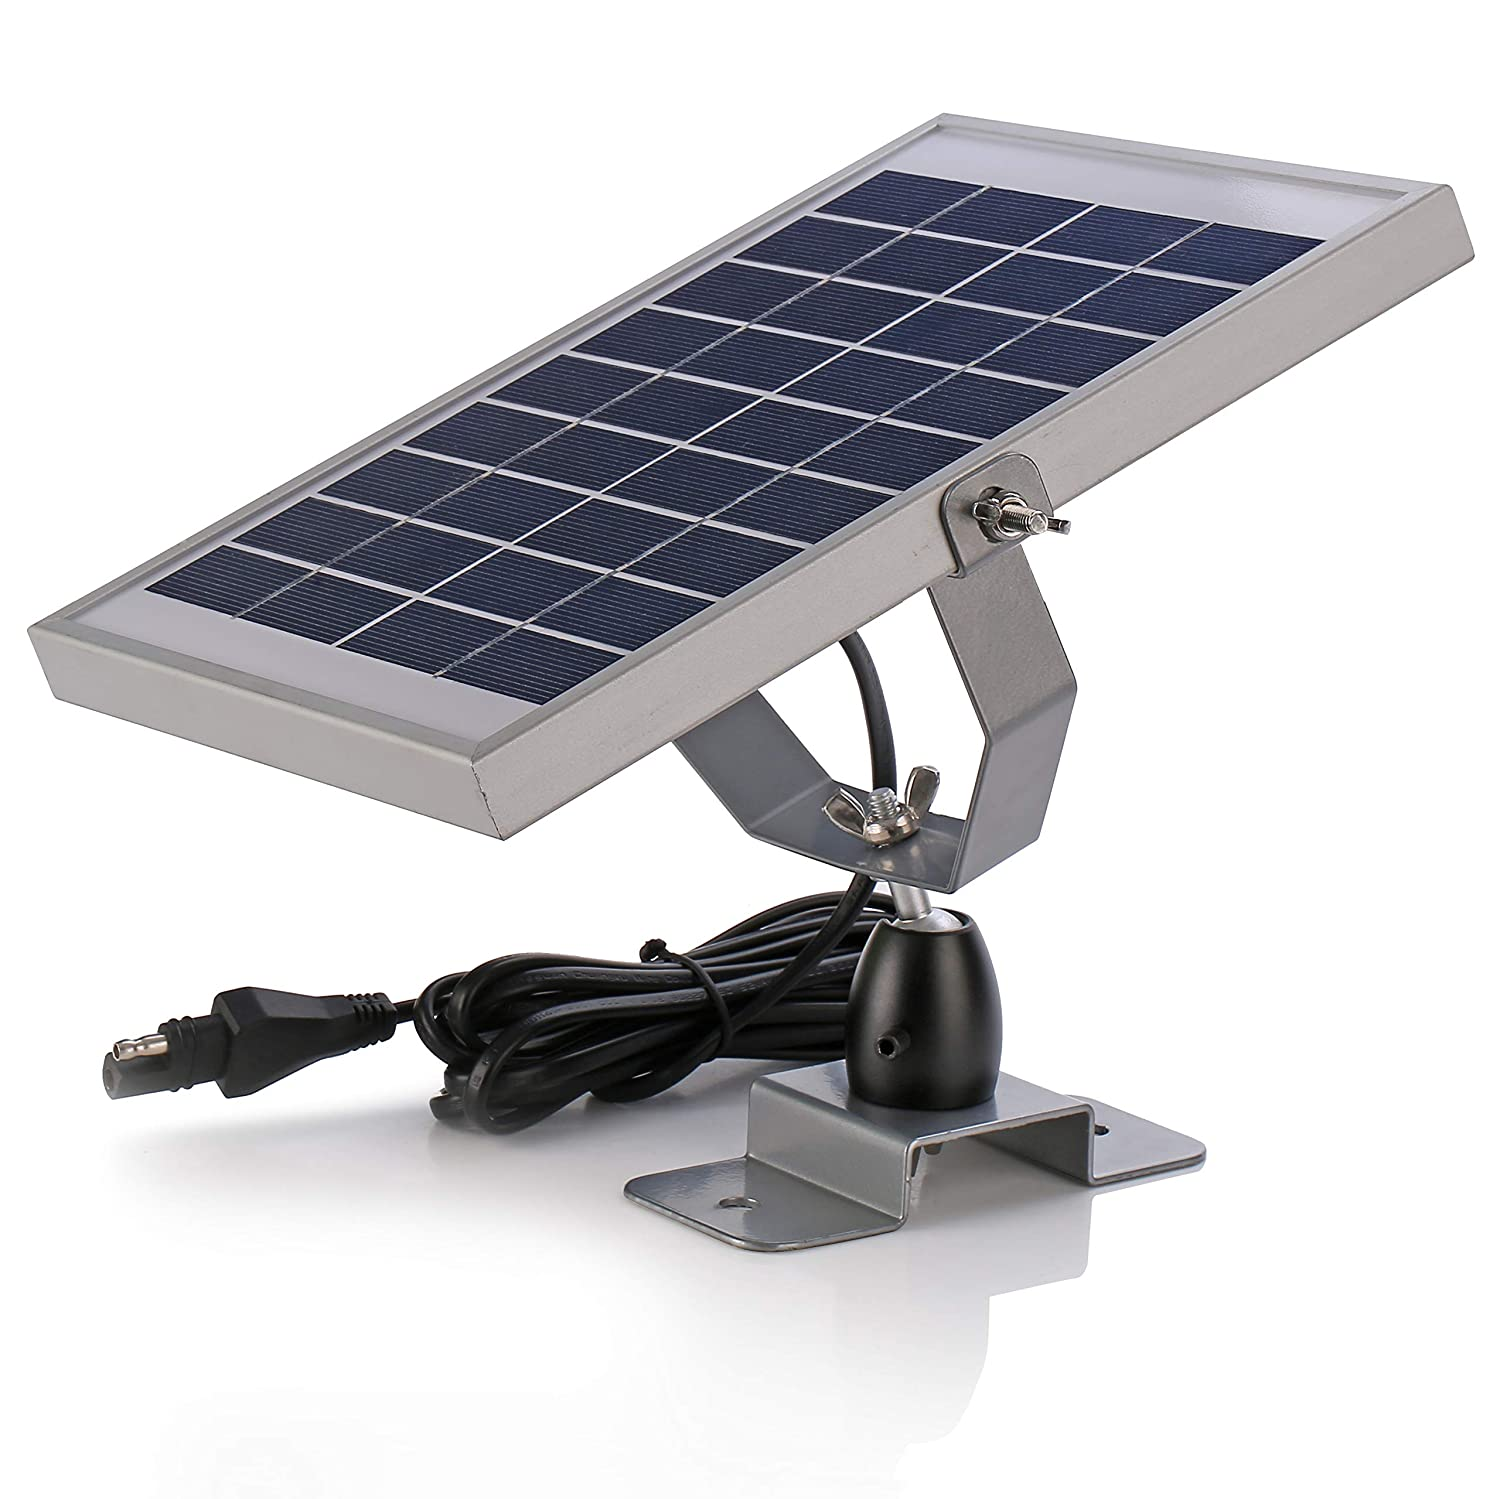 SUNER POWER Waterproof Deer Feeder Solar Battery Trickle Charger and Maintainer 6V